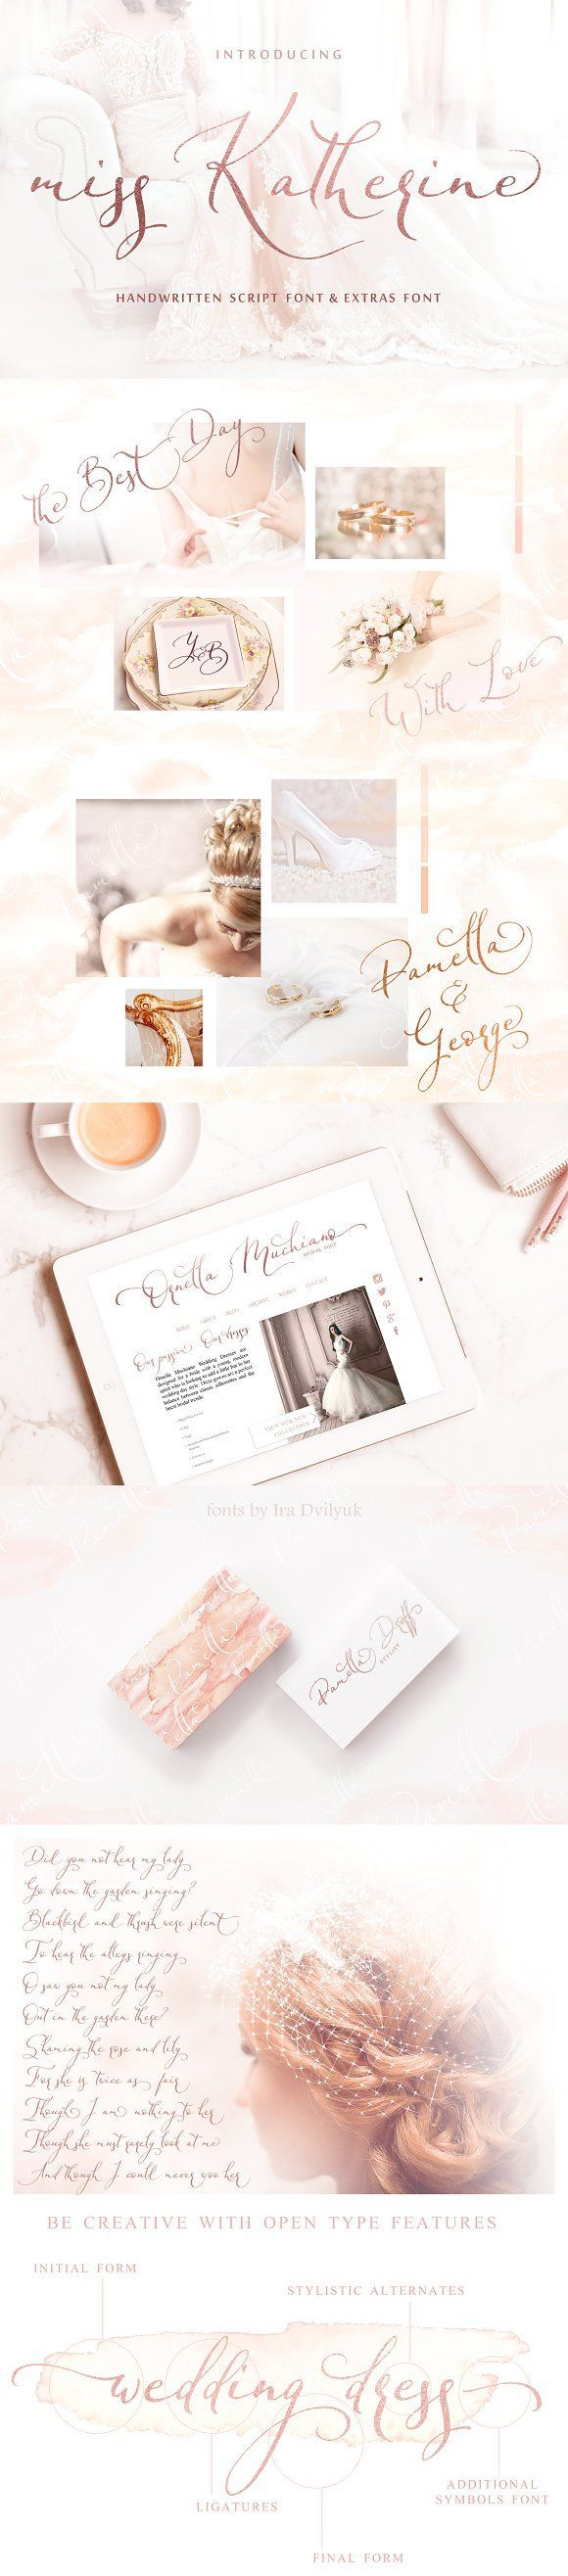 a gorgeous free collection available now on creative market miss katherine font extras  [ 580 x 2631 Pixel ]